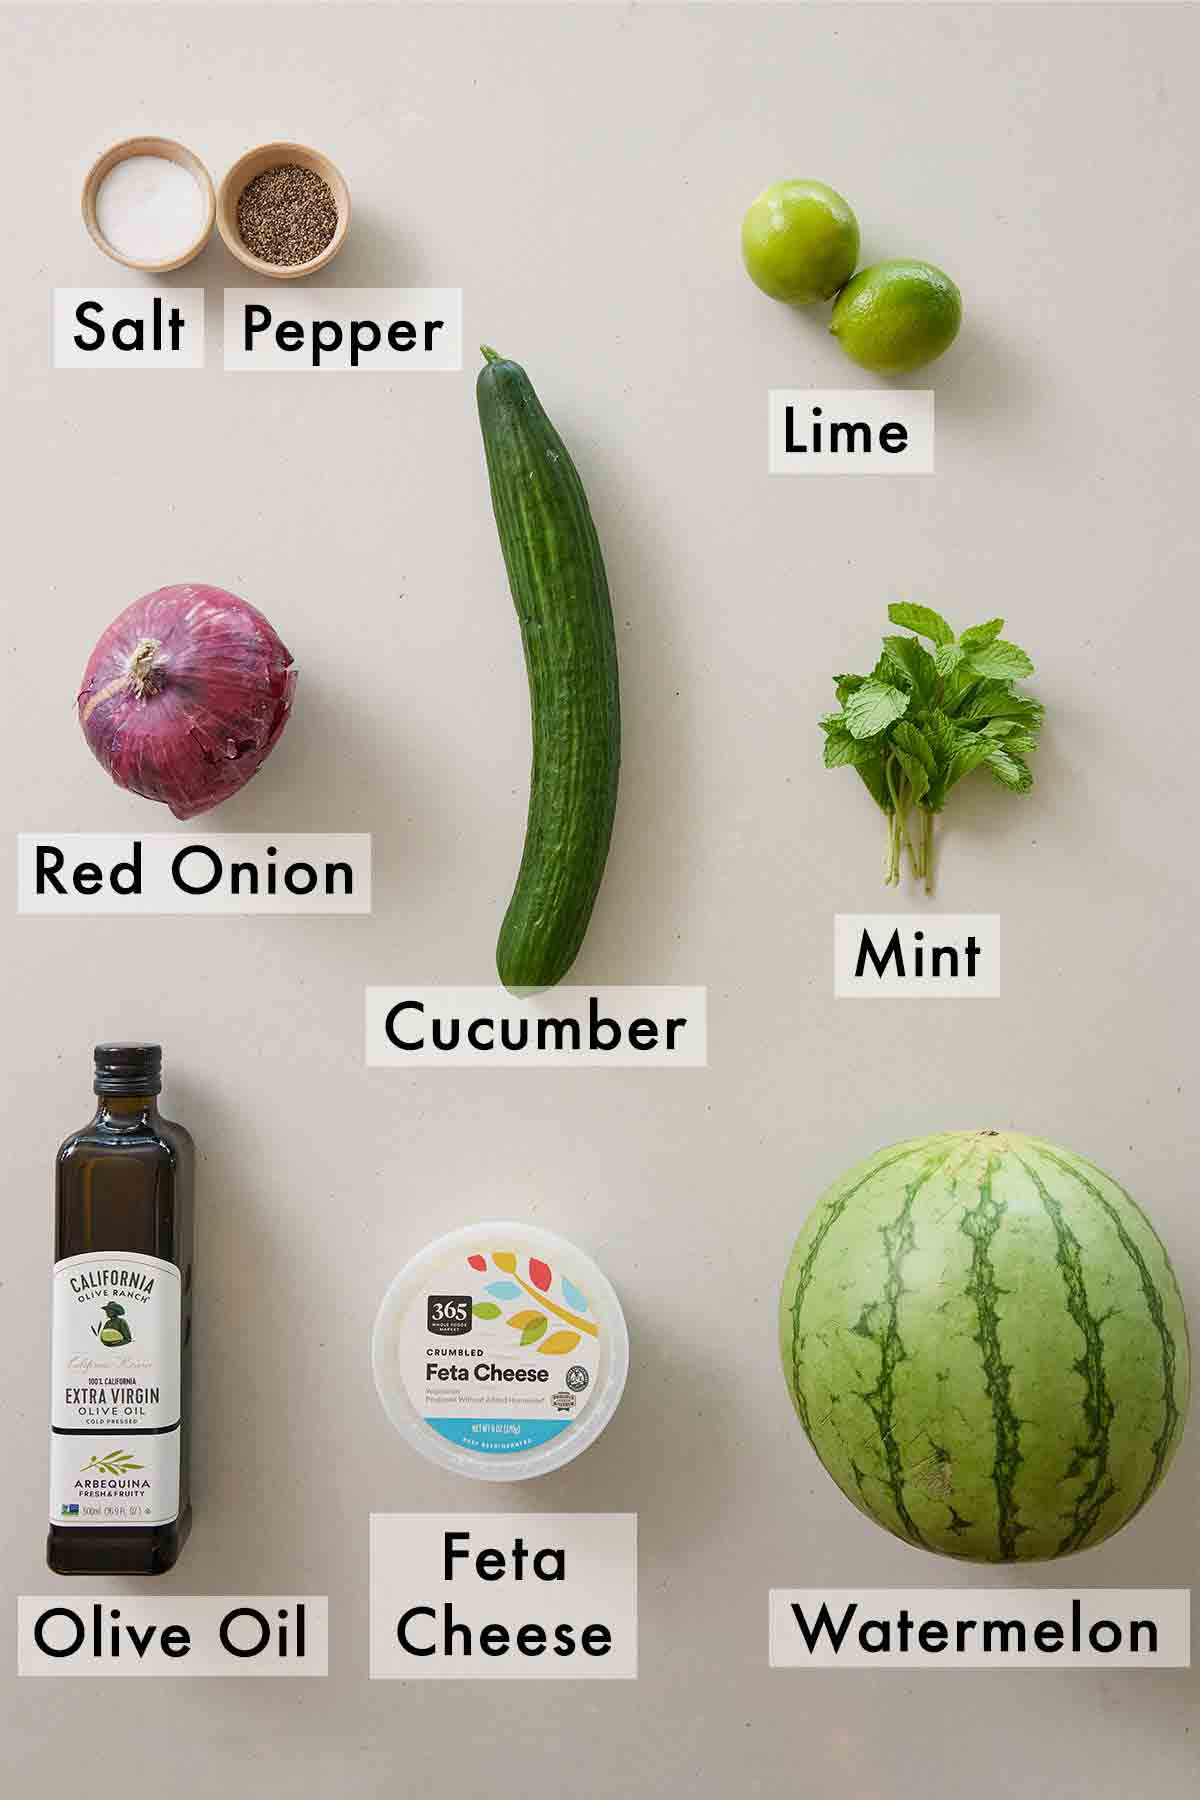 Ingredients needed to make a watermelon salad.